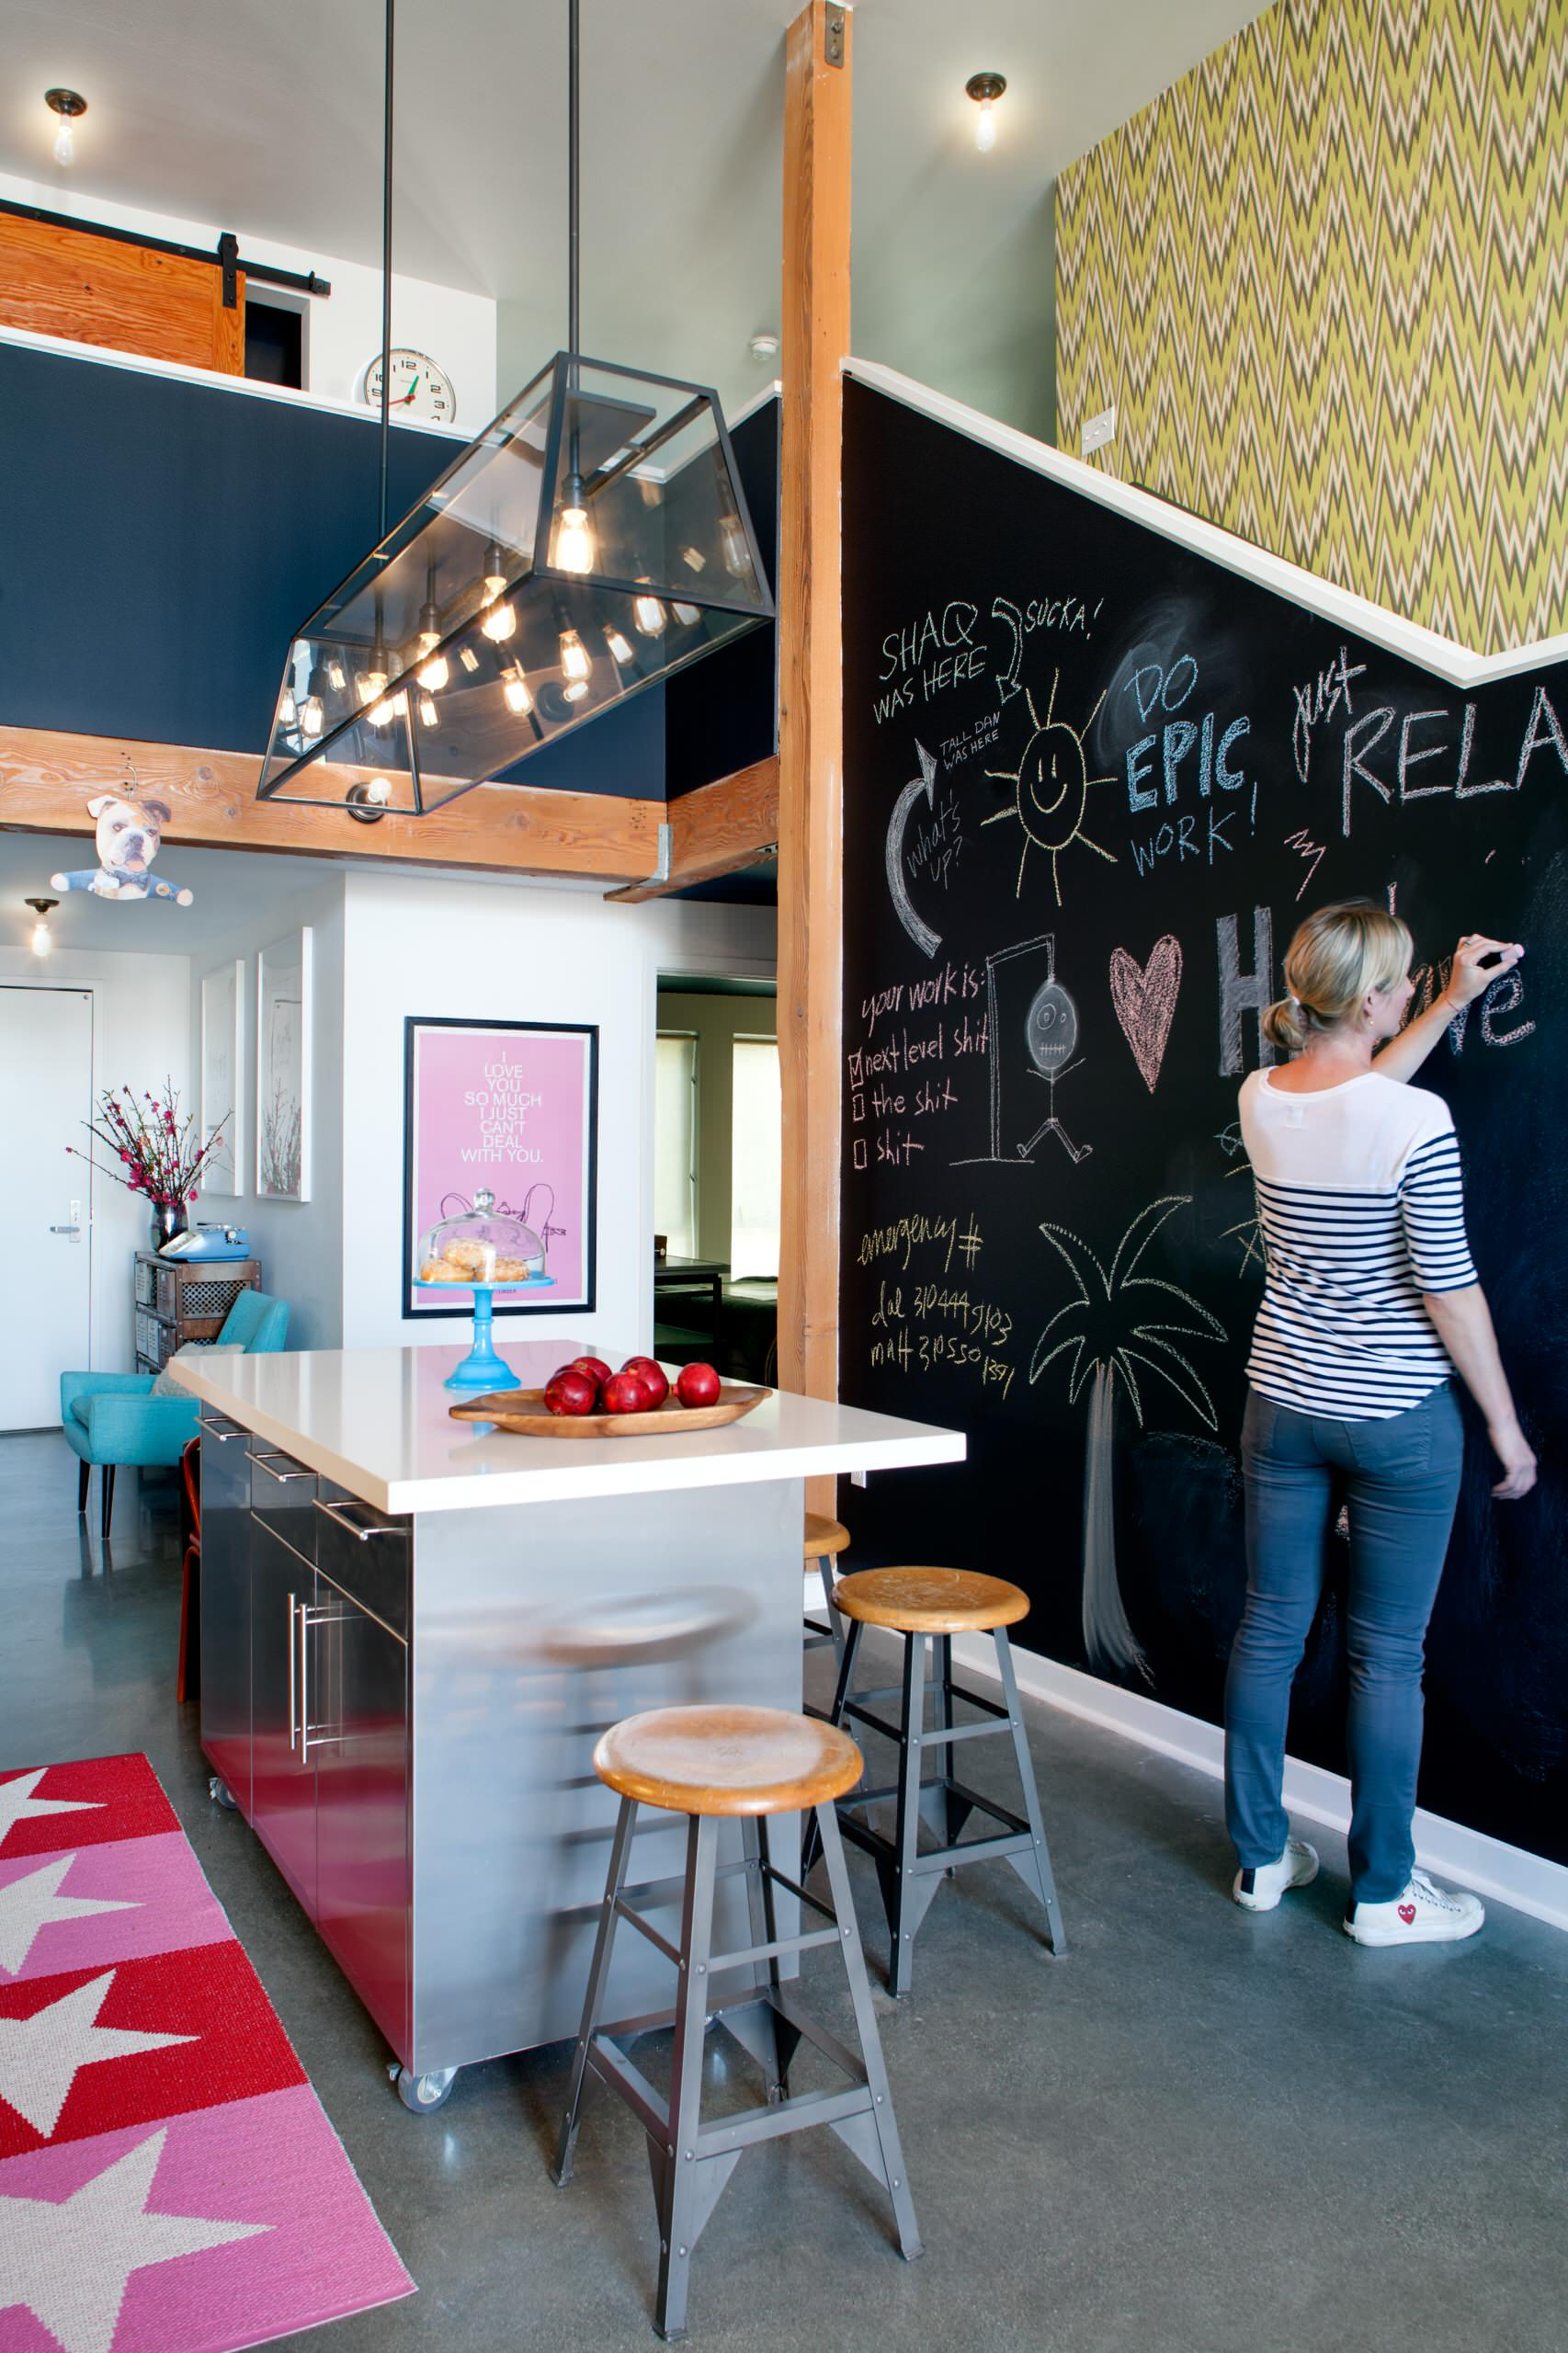 How to Make Chalkboard Paint for Interior Decorating: How To Make Chalkboard Paint With Linear Chandelier And Ceiling Lights For Eclectic Kitchen Design With Kitchen Island And Kitchen Bar Stools Plus Painted Concrete Floor Also Baseboard